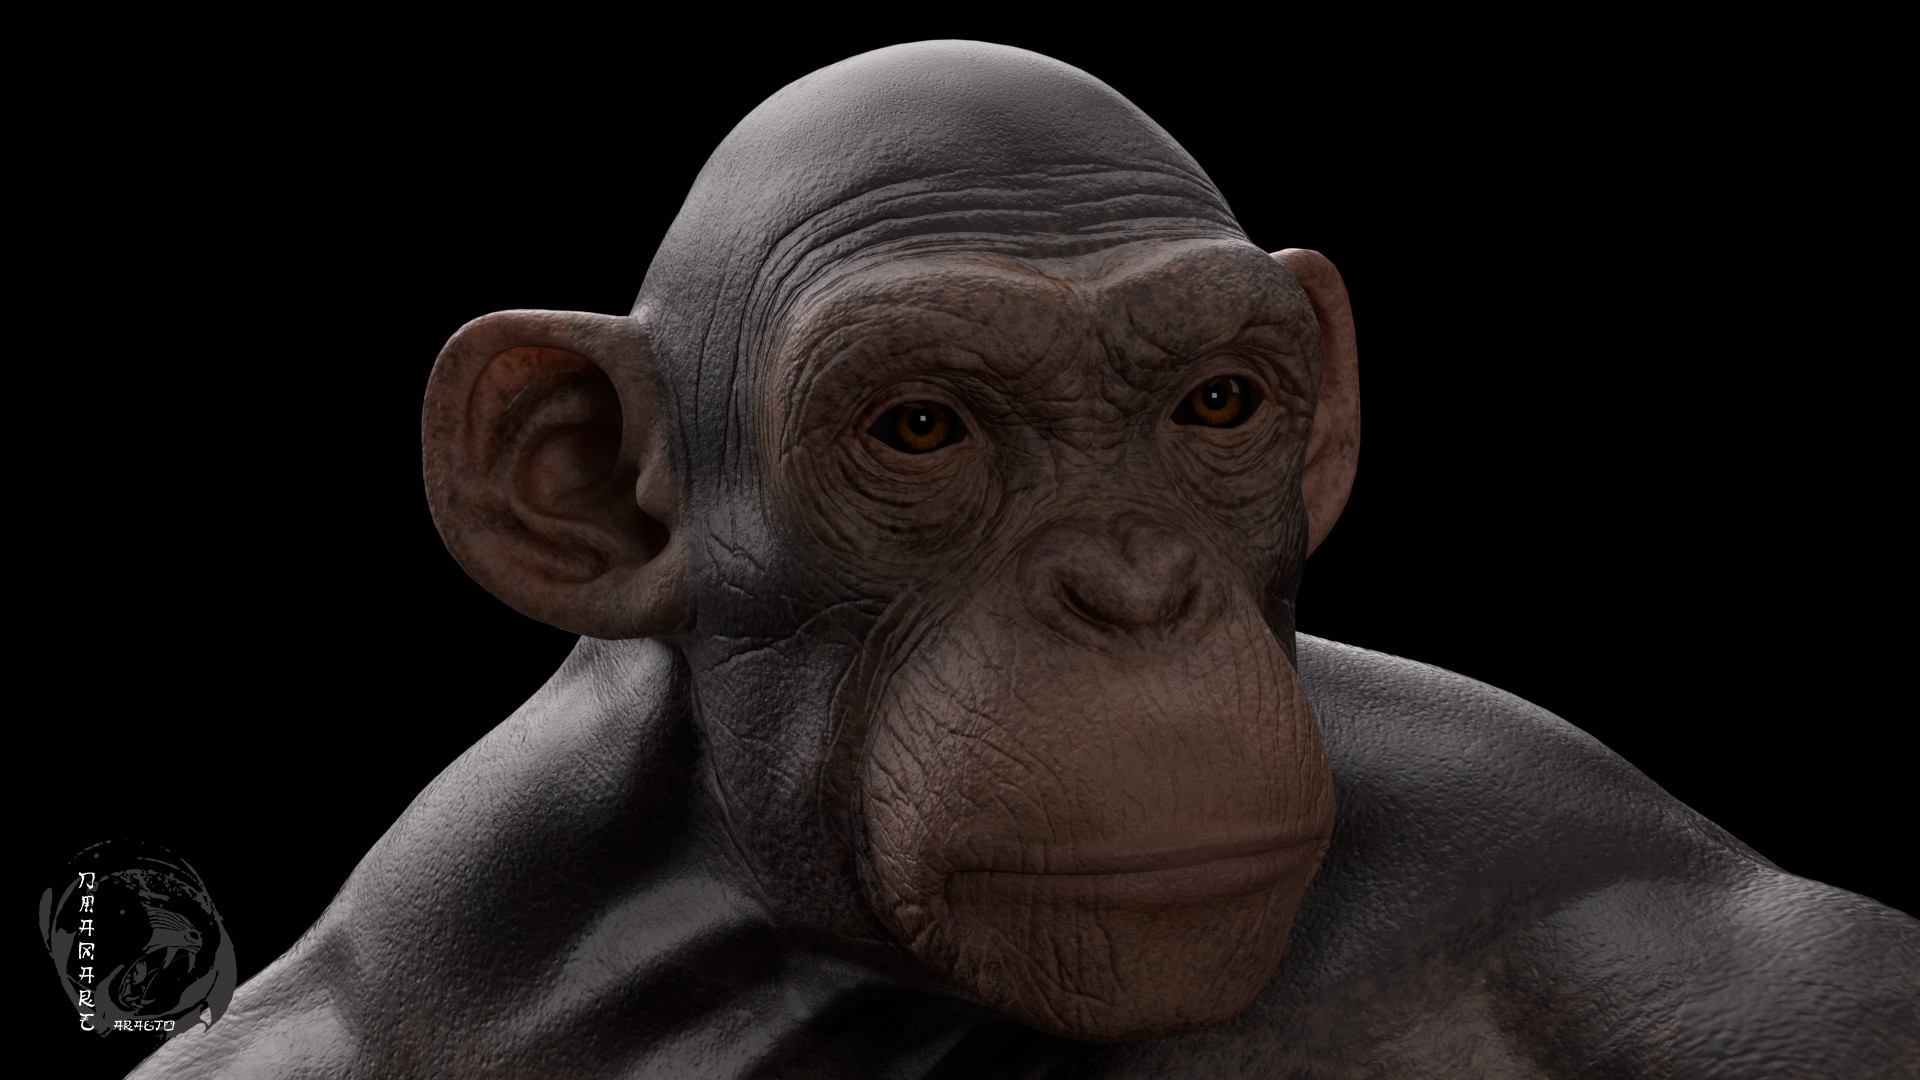 Dimax esteban araujo chimp render7